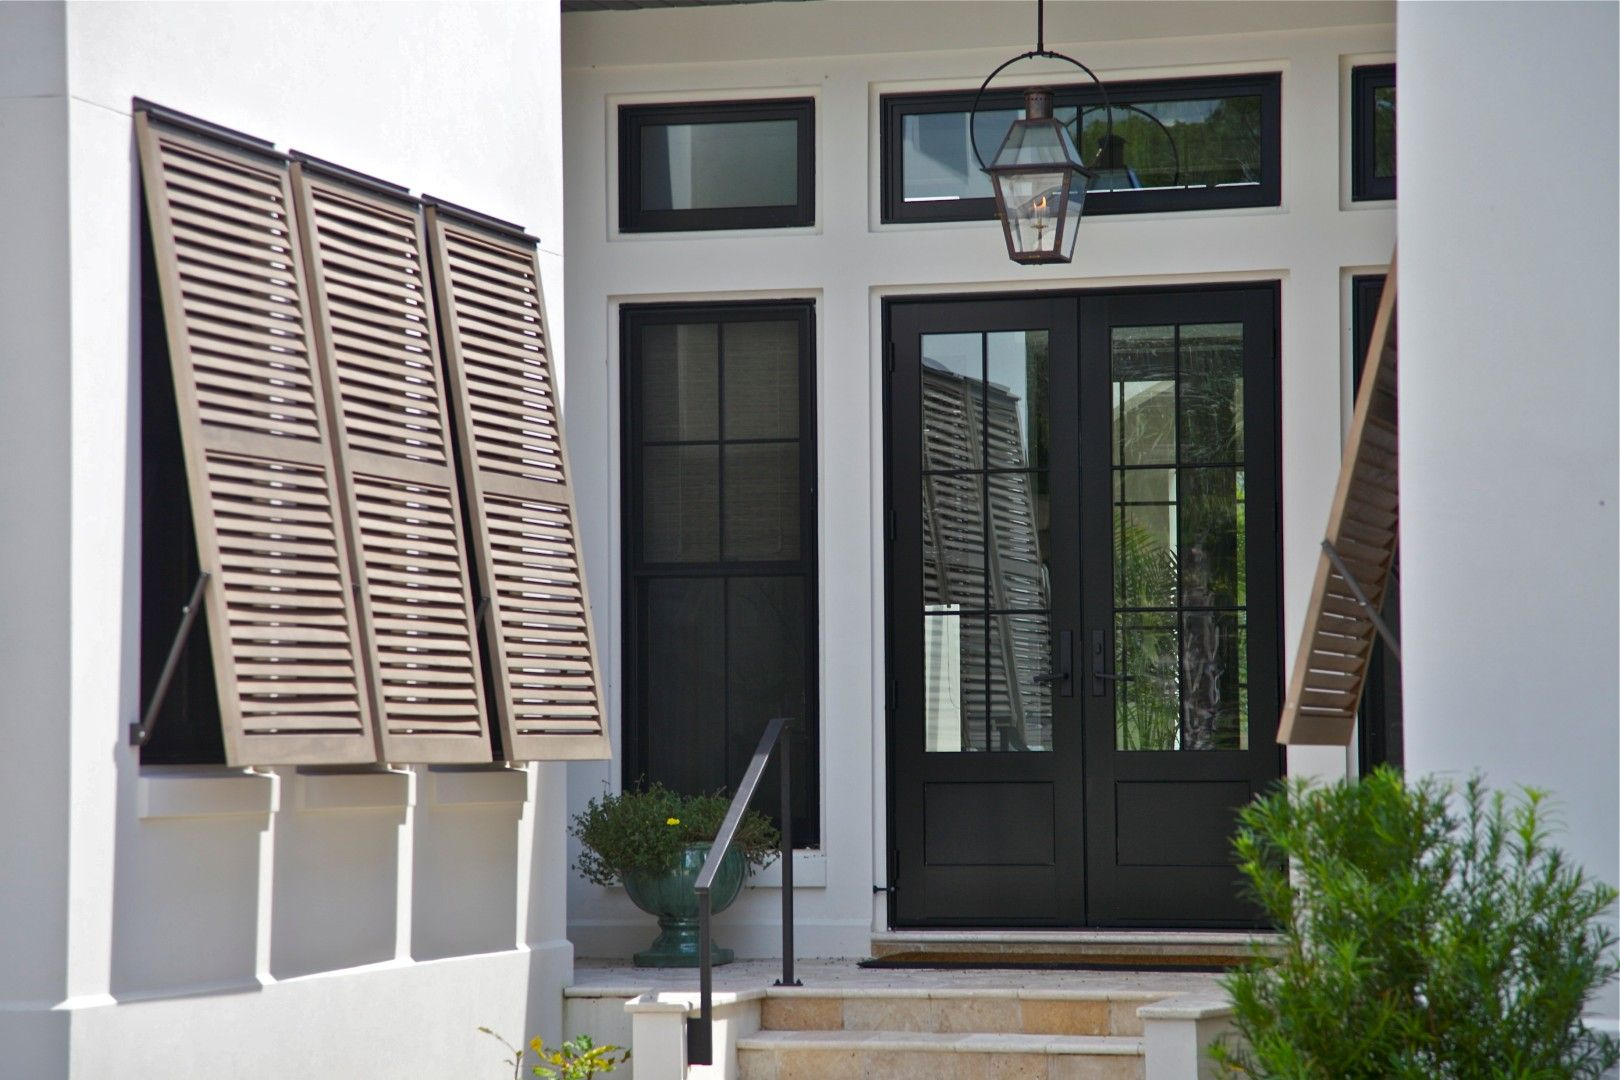 Marvin windows and aluminum clad front door with beautiful bahama shutters on this custom home - The shutter clad house ...